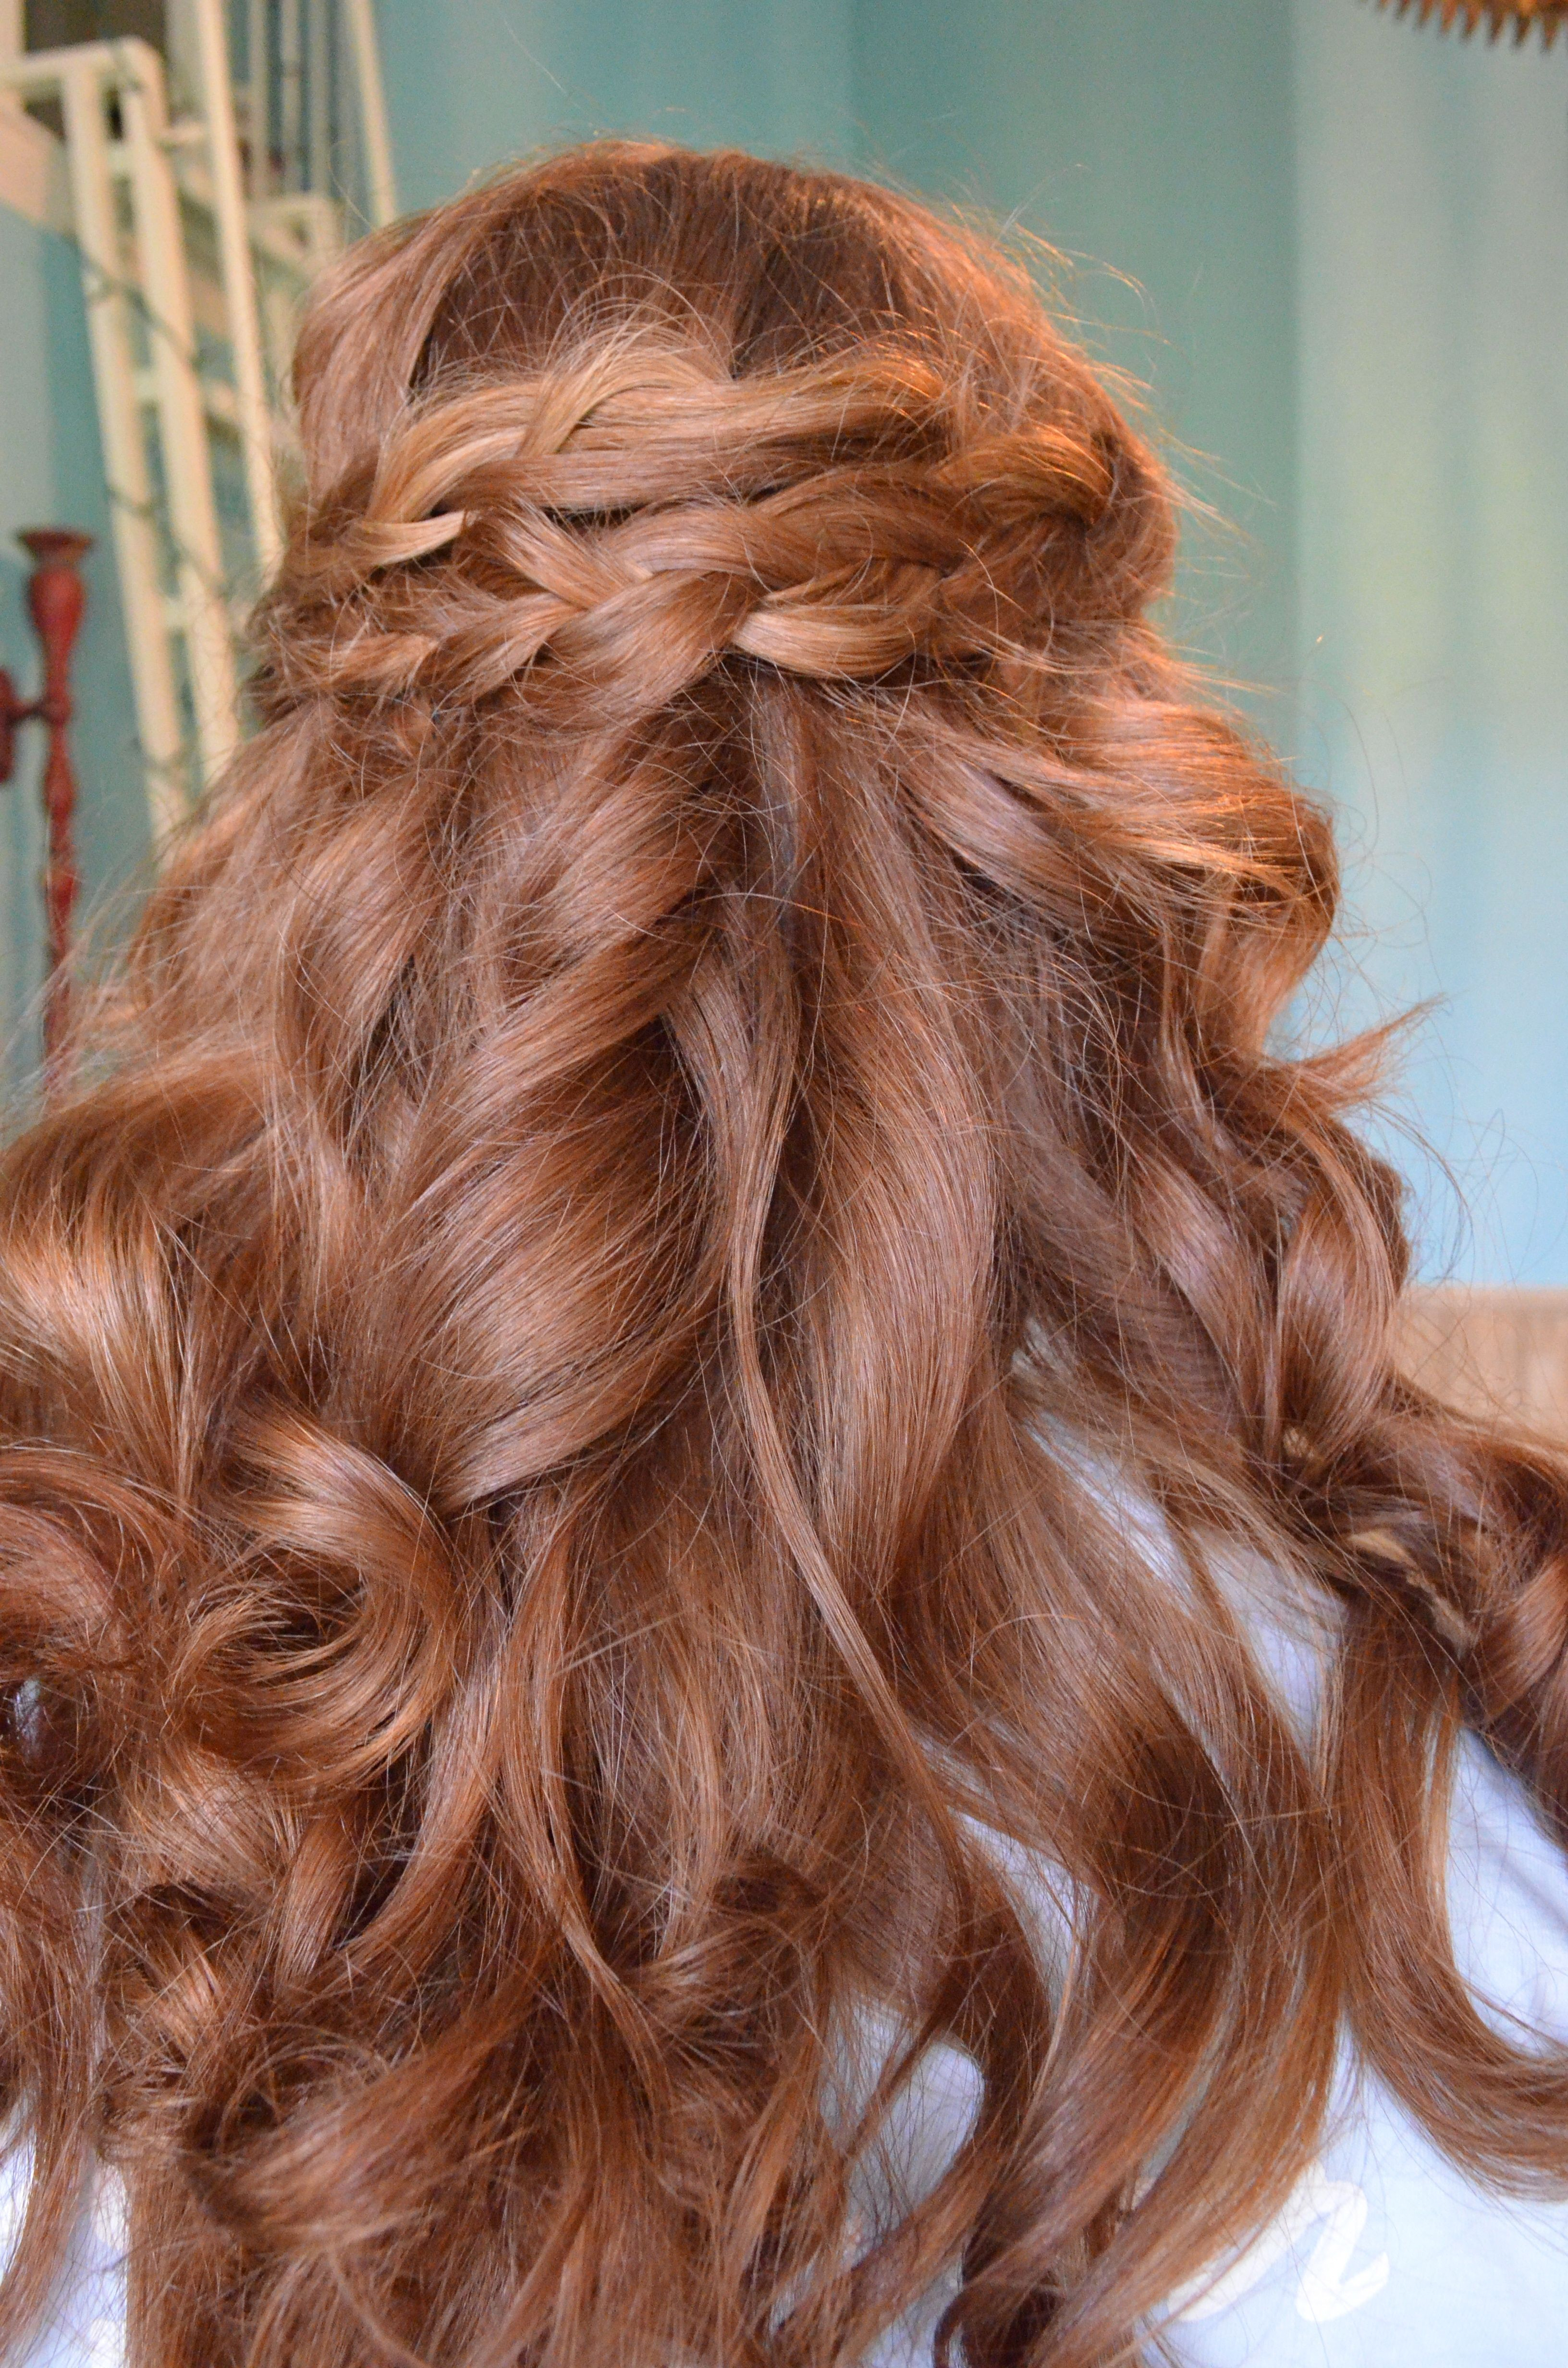 Winter Formal Hairstyles Pretty Winter Formal Hairstyle Ideas (With images) | Ball hairstyles ...